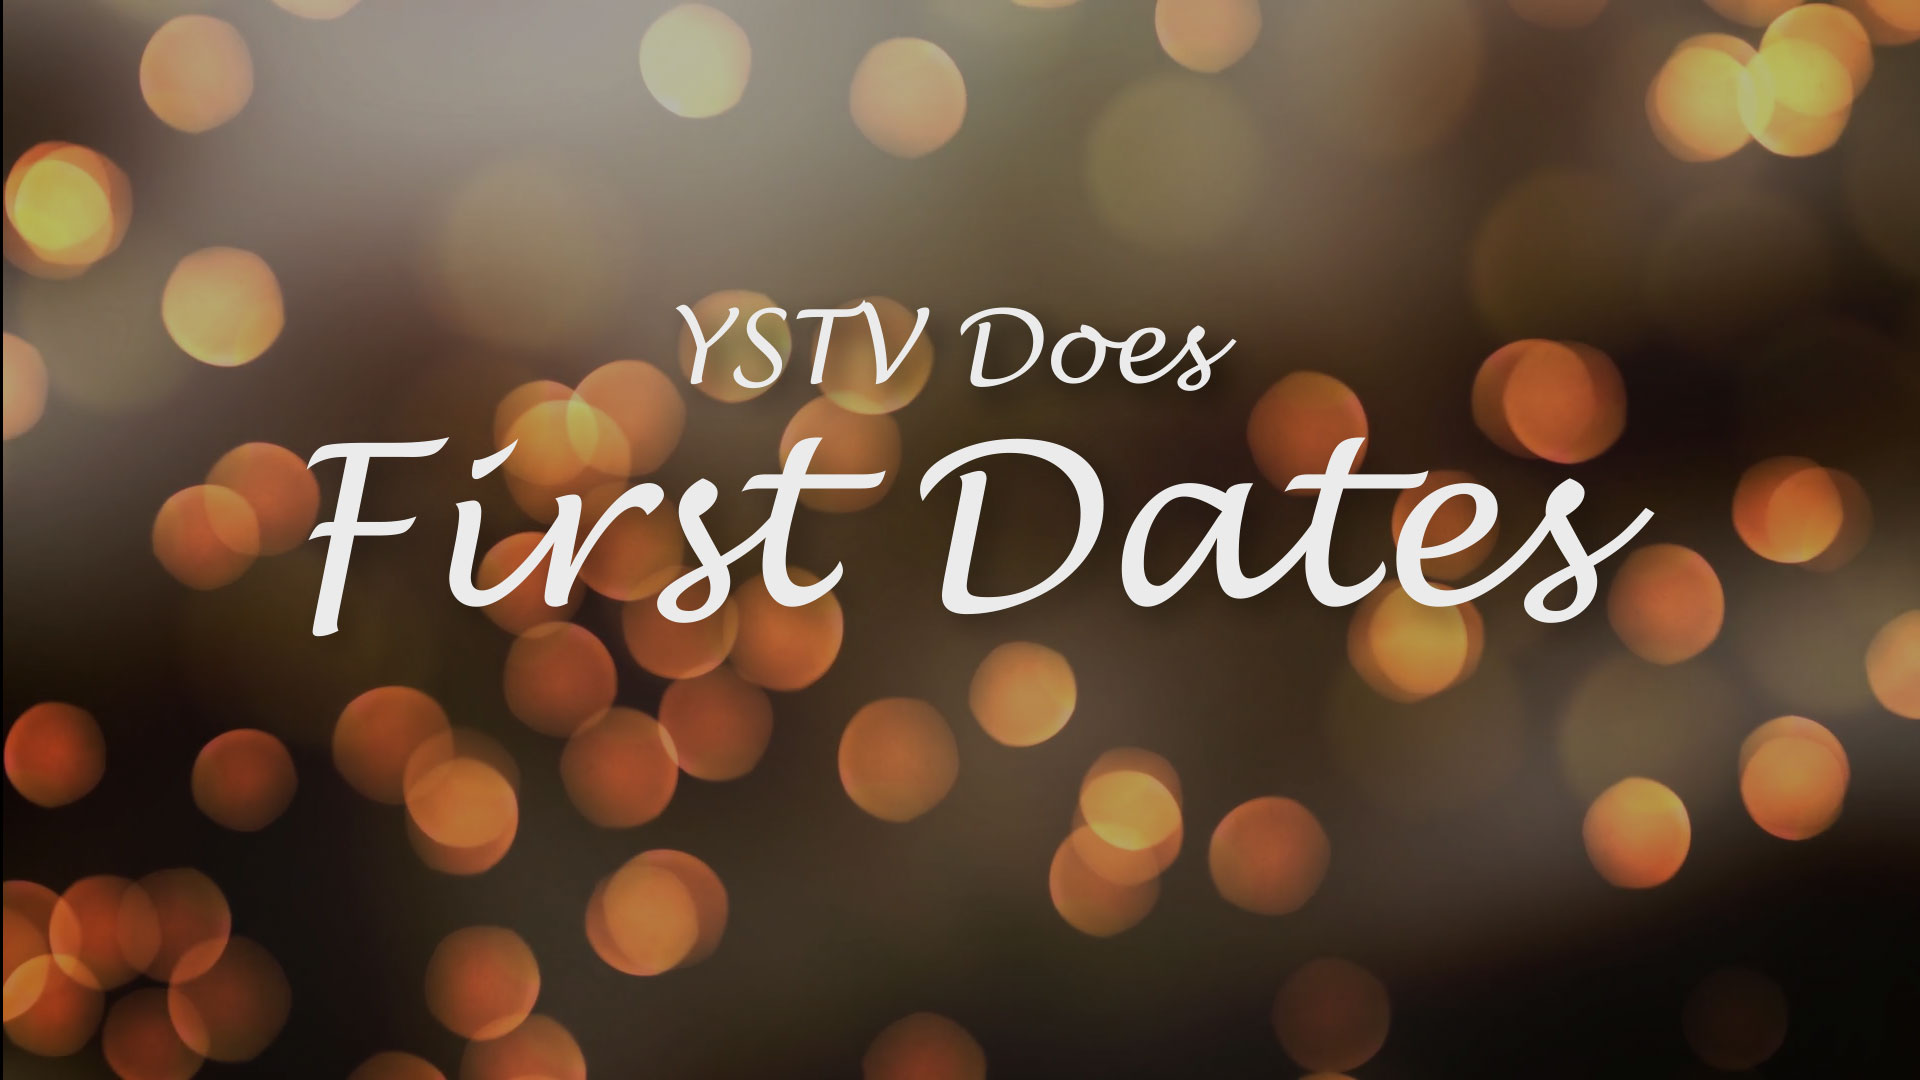 YSTV Does First Dates